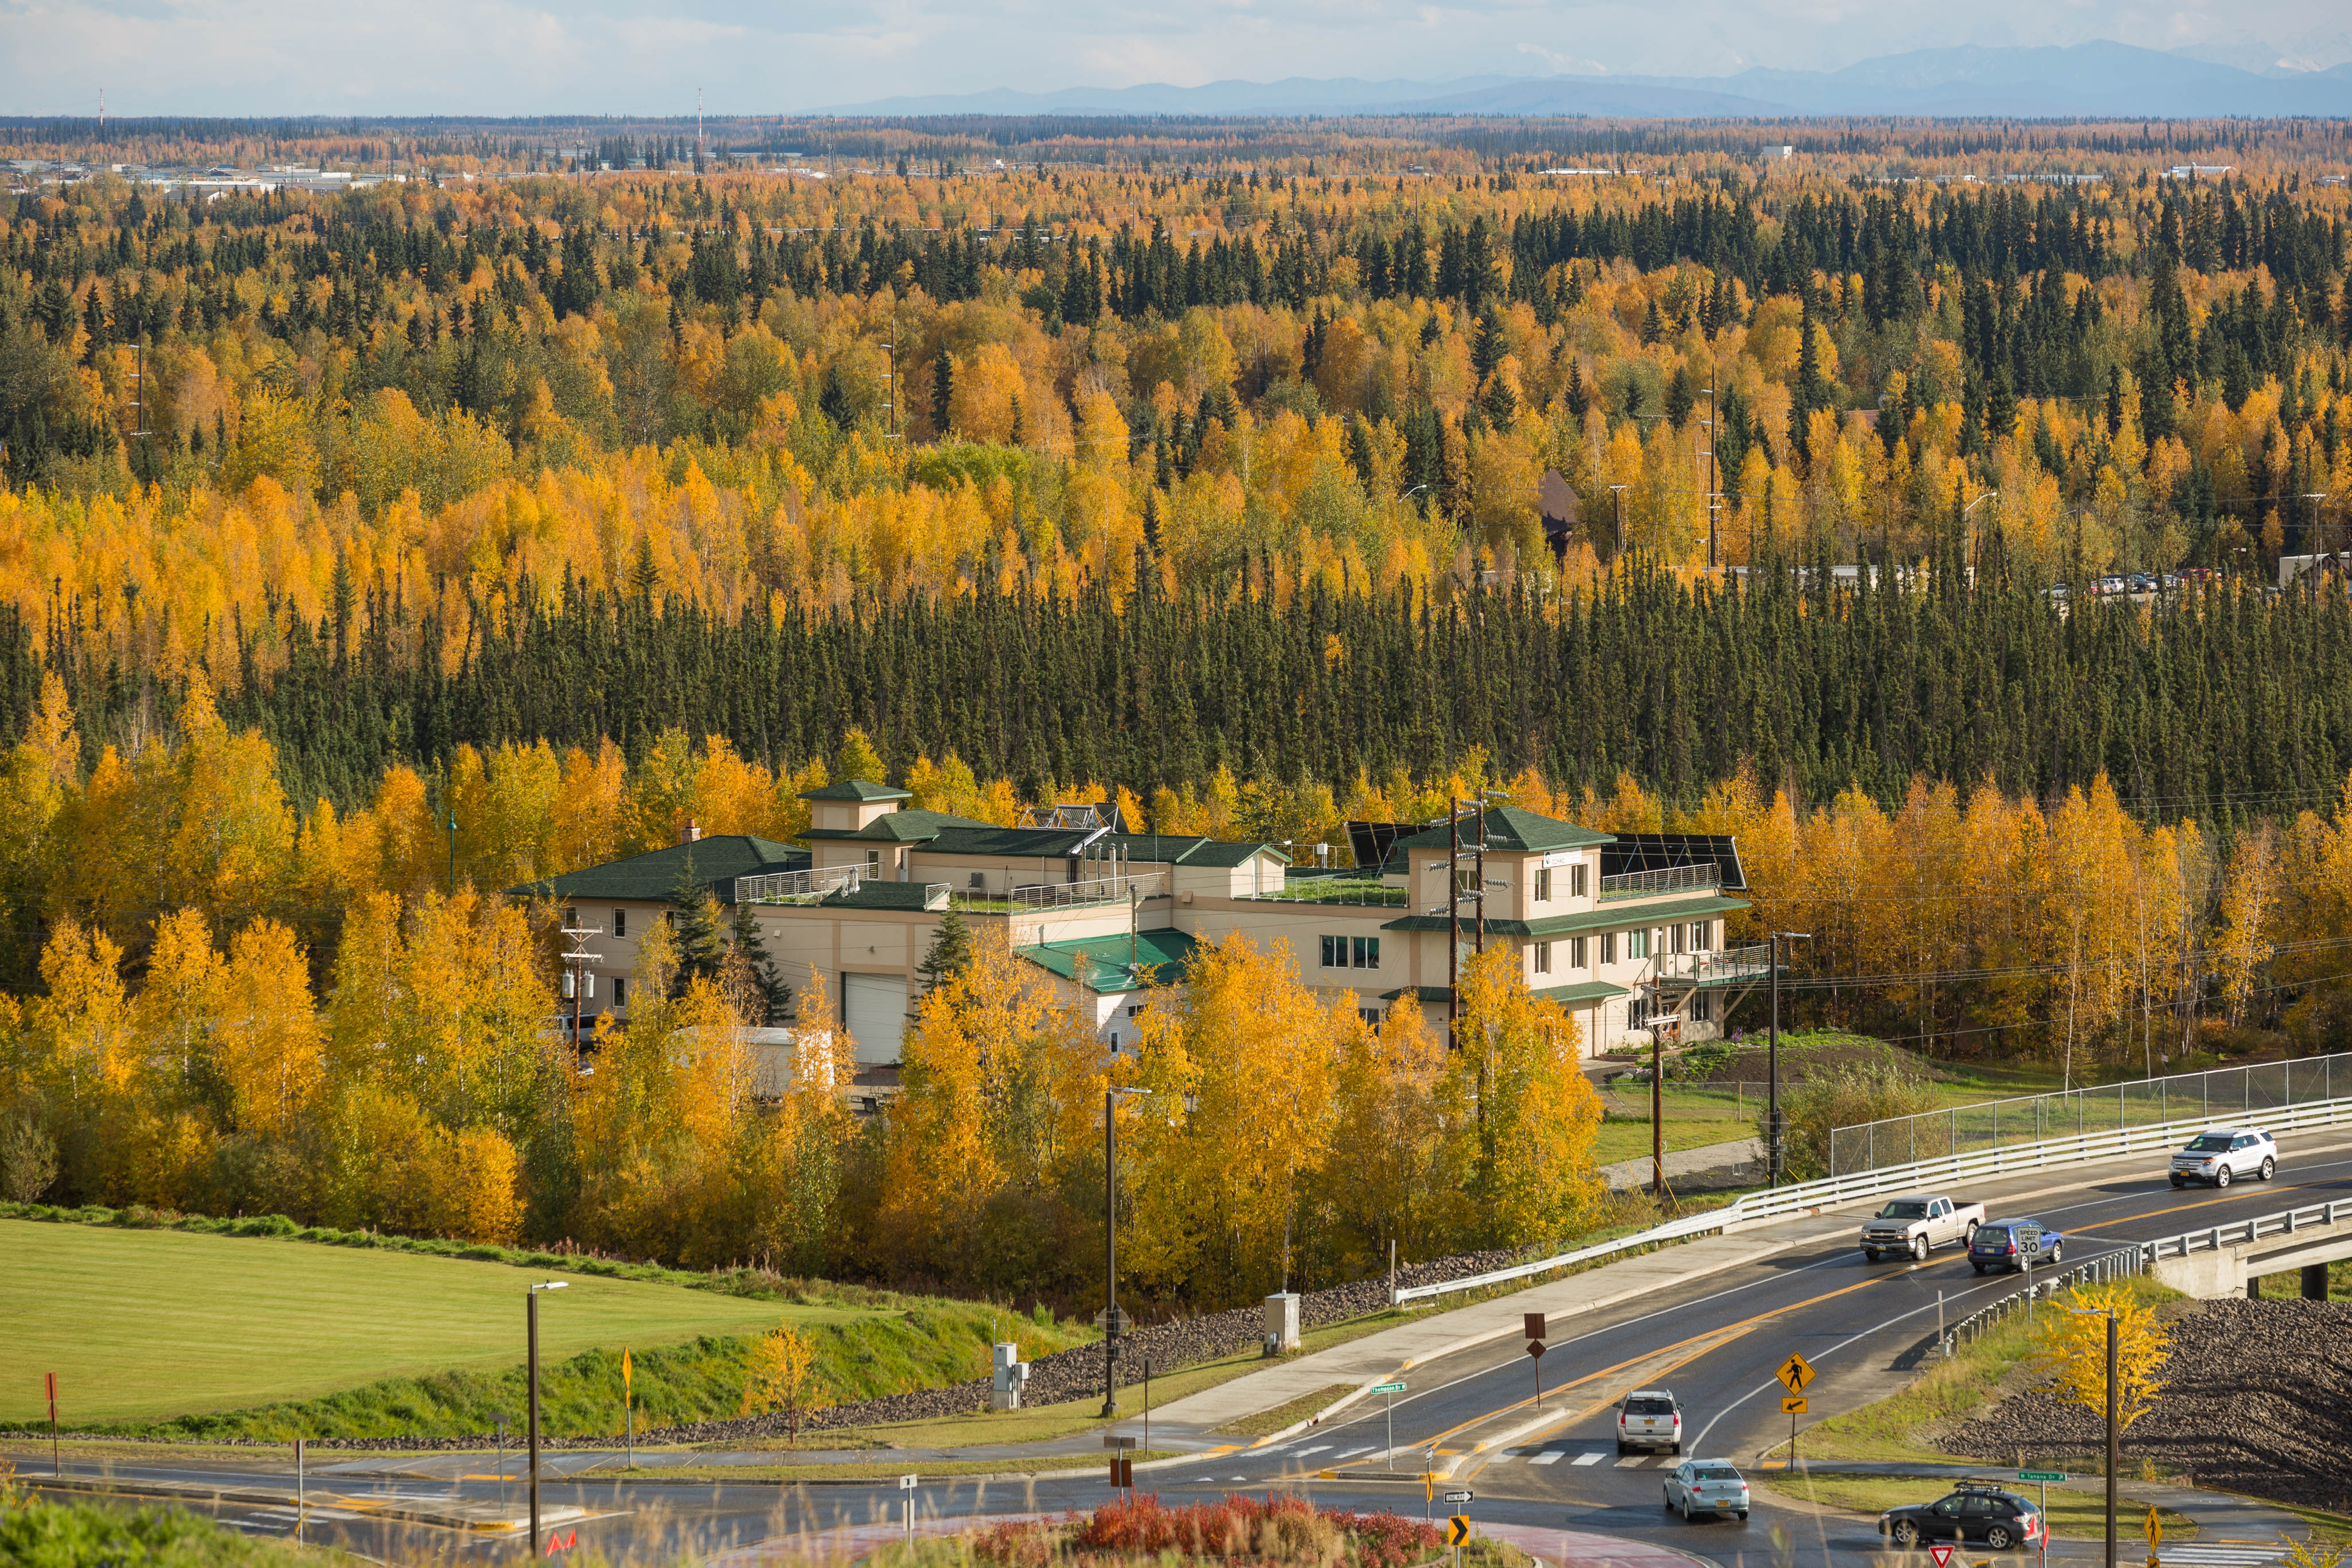 Inuit should have a voice in housing design, says panel